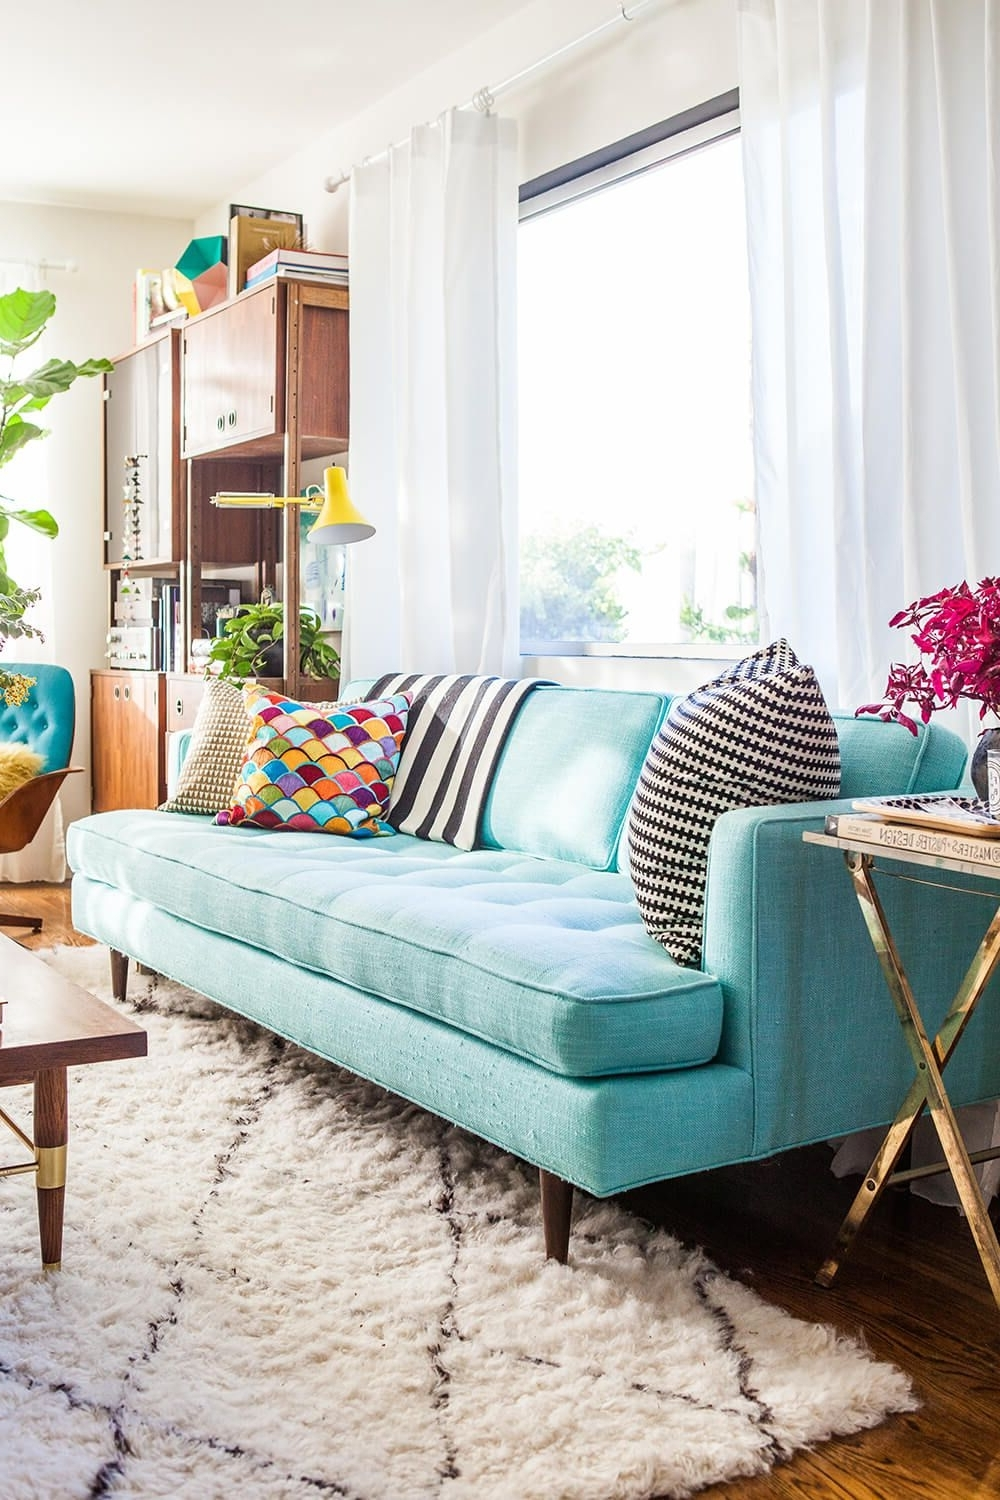 Best And Newest Aqua Sofas Regarding 84 Affordable Amazing Sofas Under $1000 (Emily Henderson) (View 10 of 20)